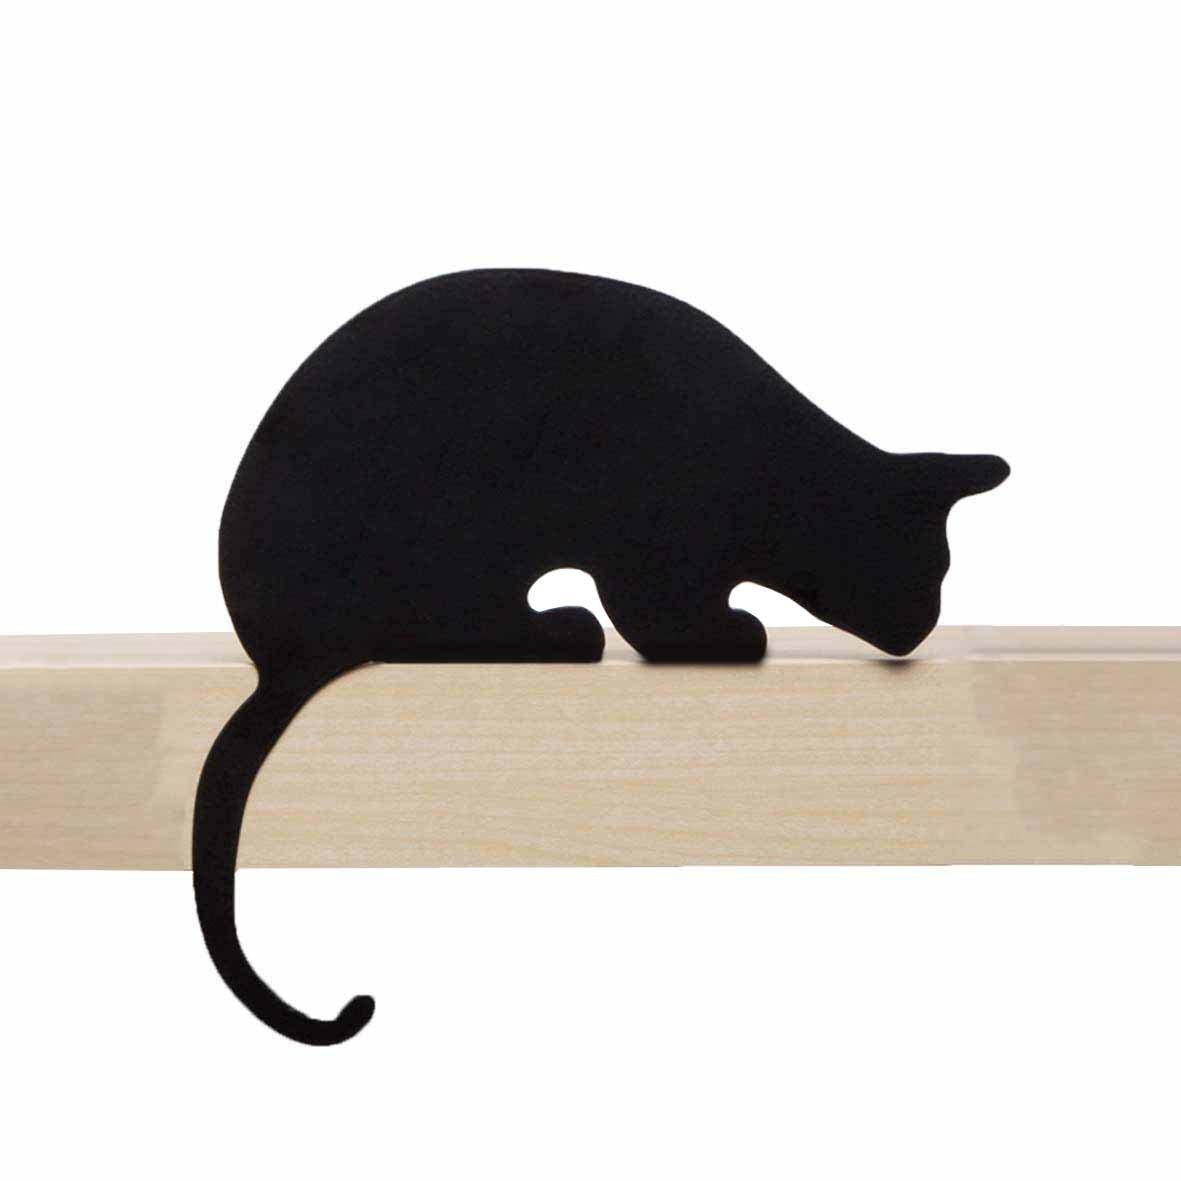 Primary image for Design Cat Home Gift Shelve Metal Black Shelf Decor Elegant SOHO Lifestyle Room